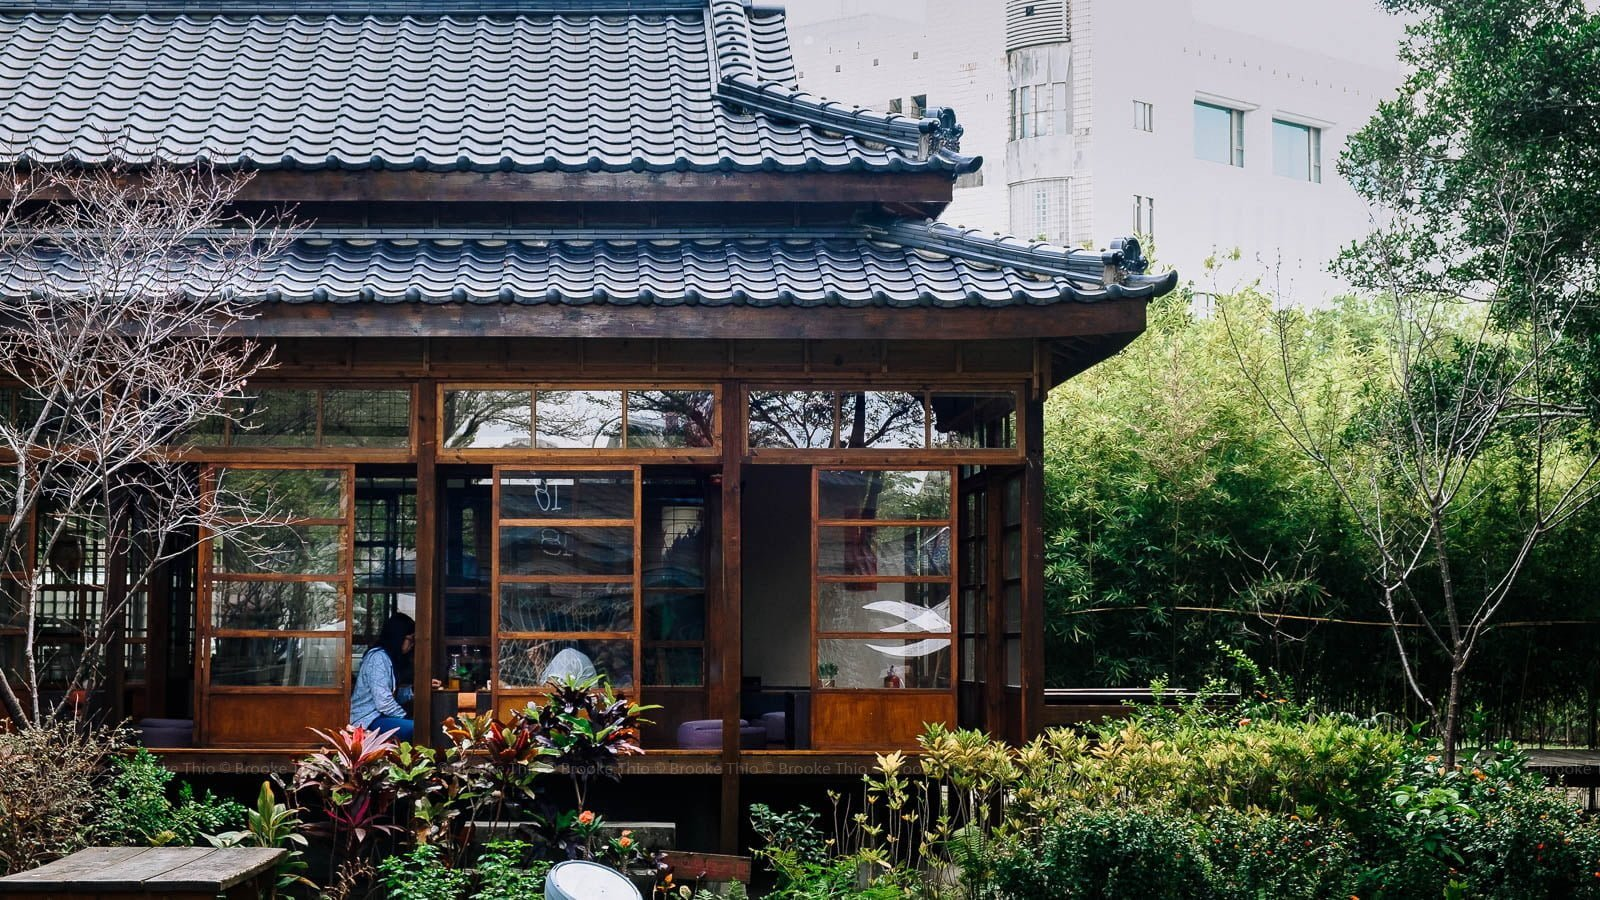 Porch and garden at Natural Way Six Arts Cultural Center, Taichung